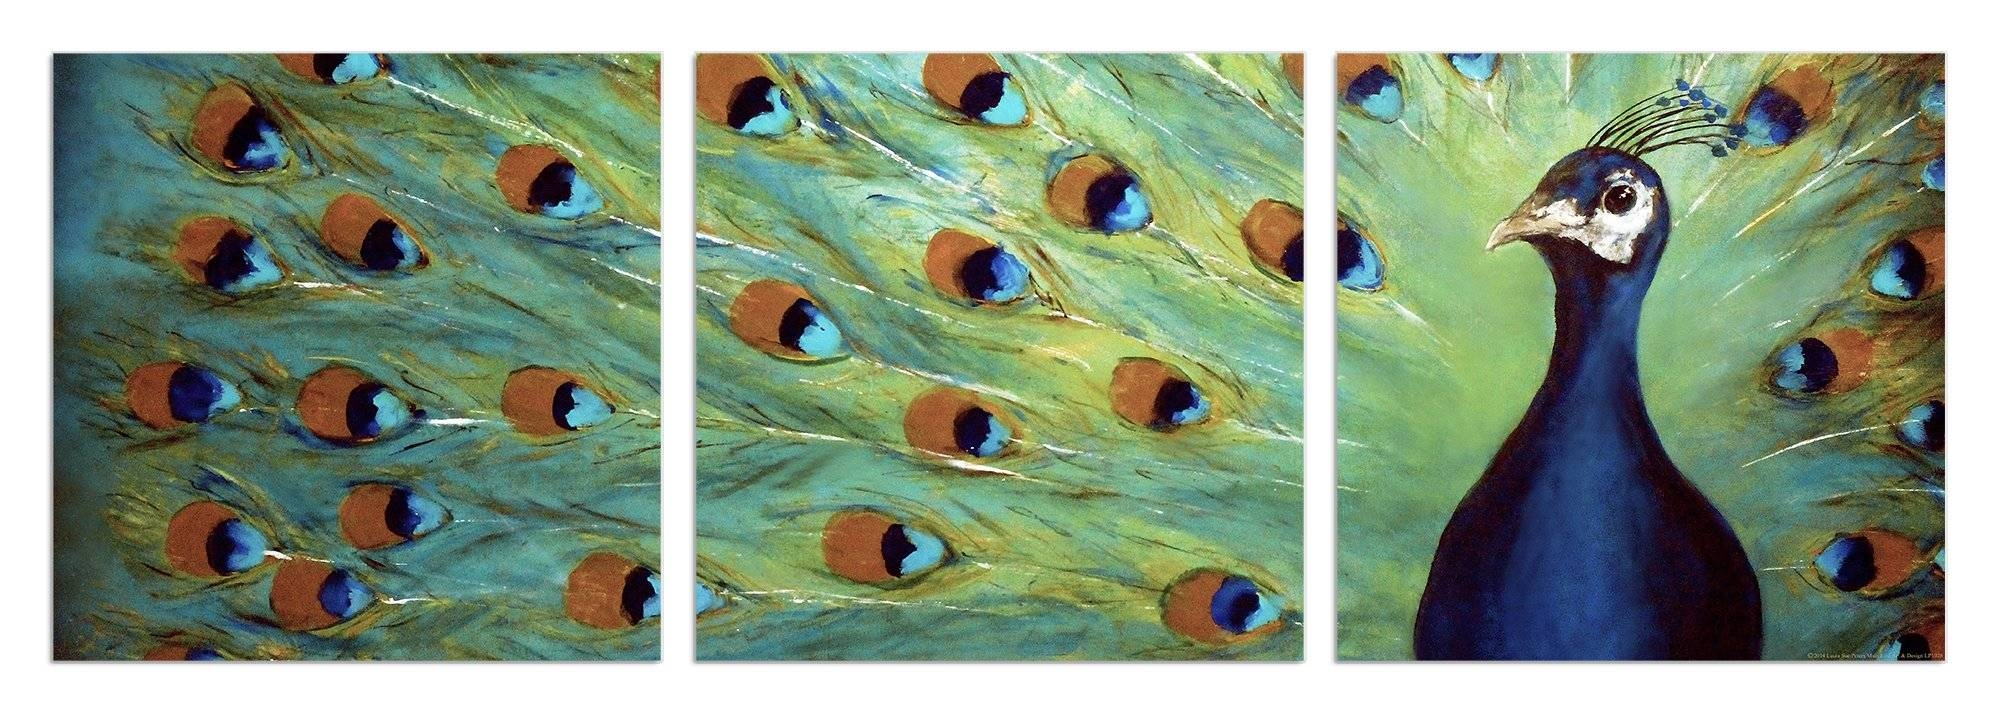 Stupell Industries Prized Peacock 3 Piece Triptych Canvas Wall Art With Regard To Most Up To Date 3 Piece Canvas Wall Art Sets (View 10 of 20)